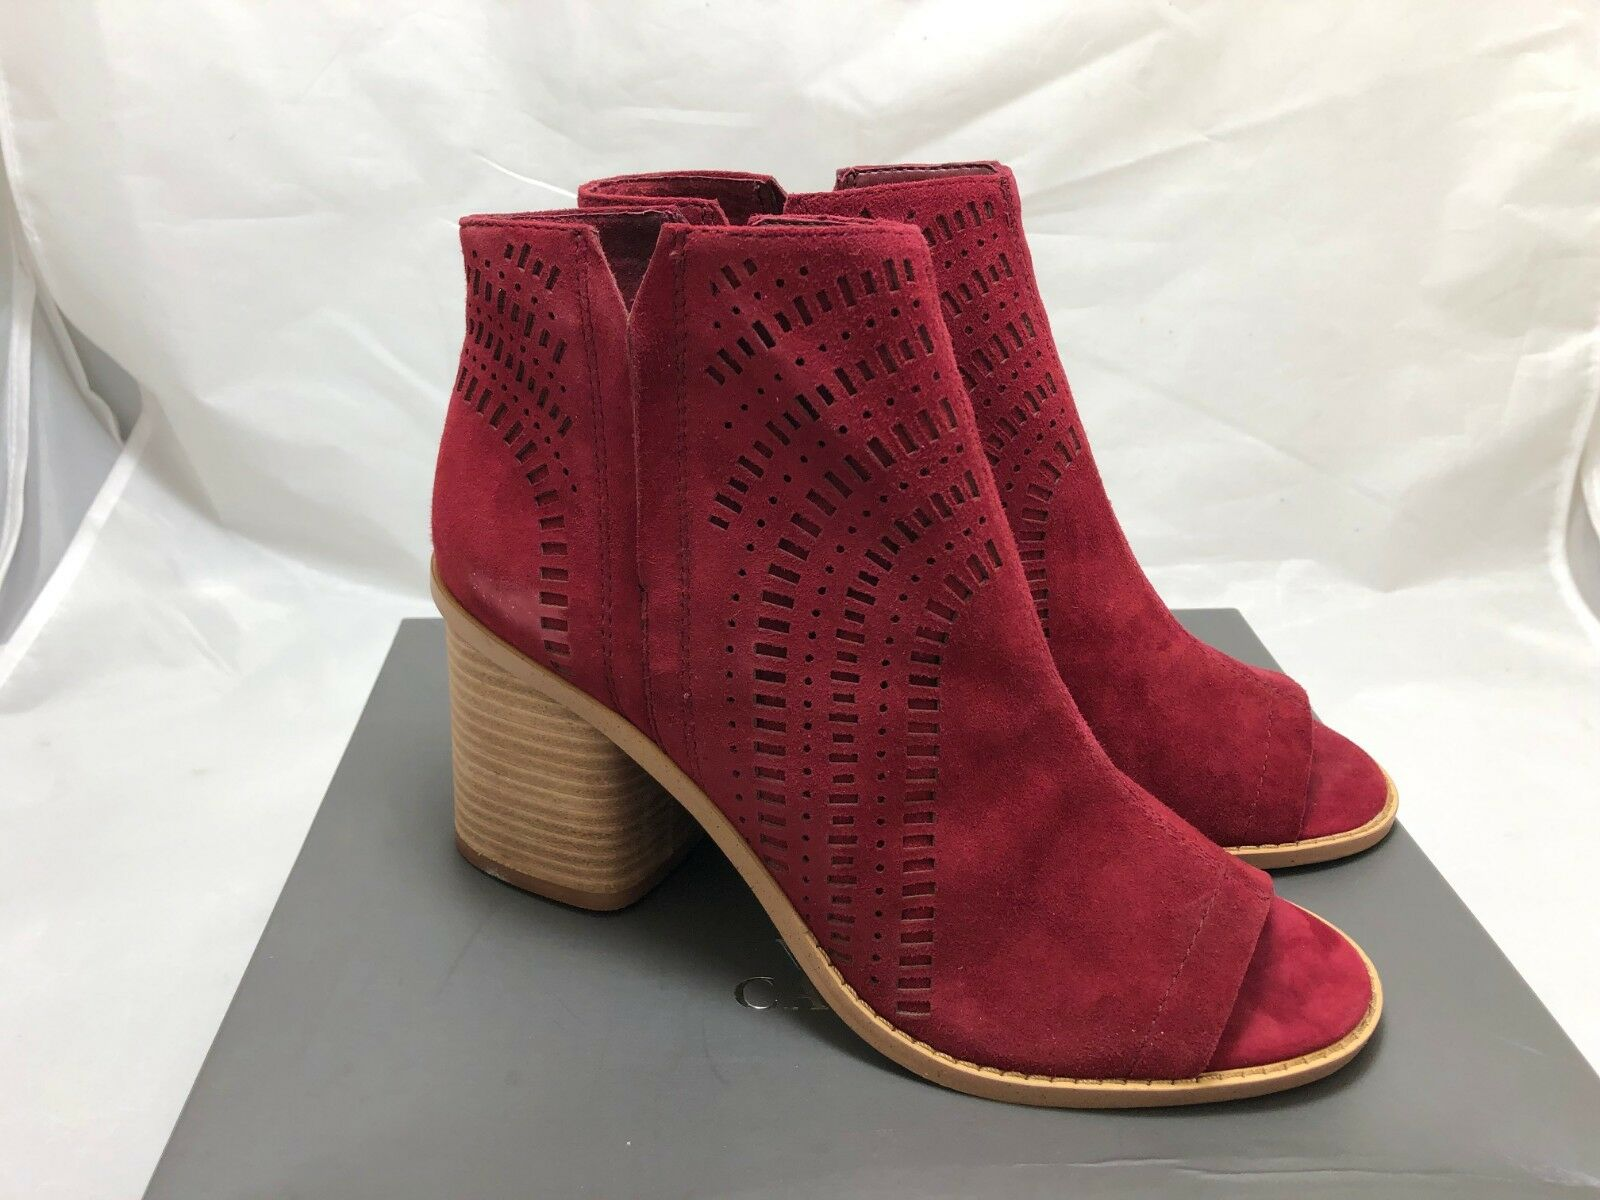 Vince Camuto Tereena Perforated Perforated Perforated Suede Peep-Toe Bootie SIZE 8.5 b6e807